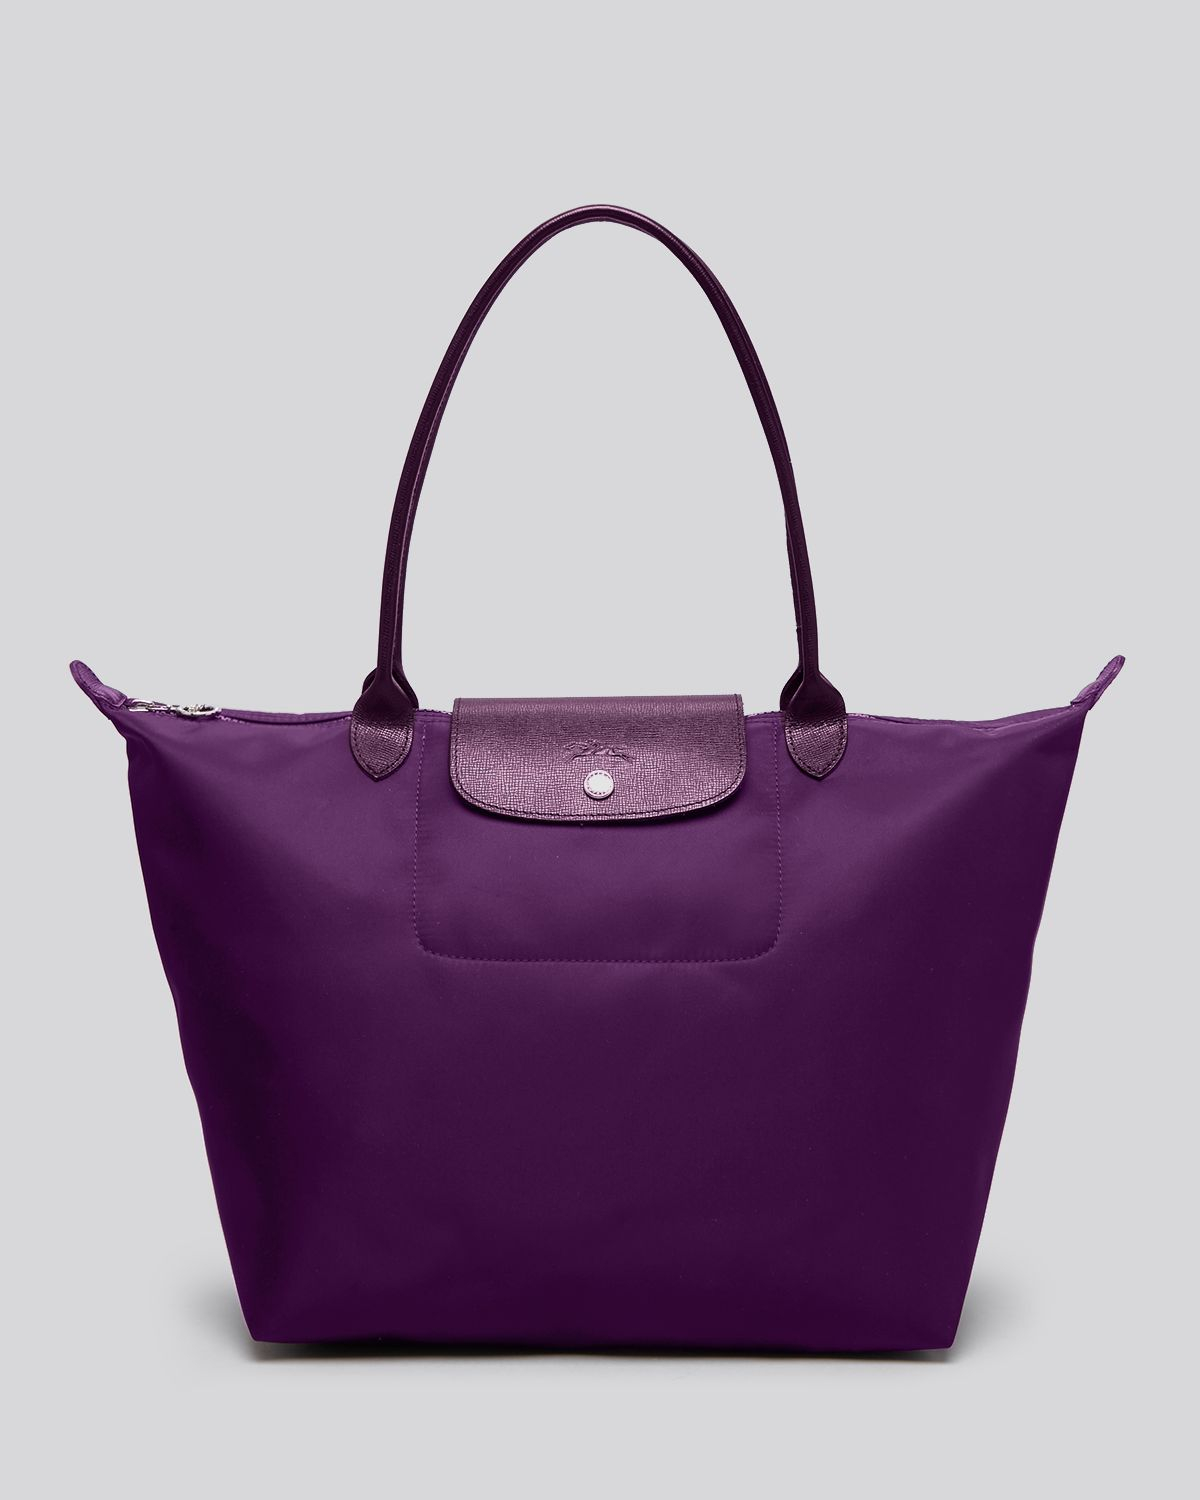 Longchamp Bag Le Pliage Colours : Longchamp tote le pliage neo large in purple lyst